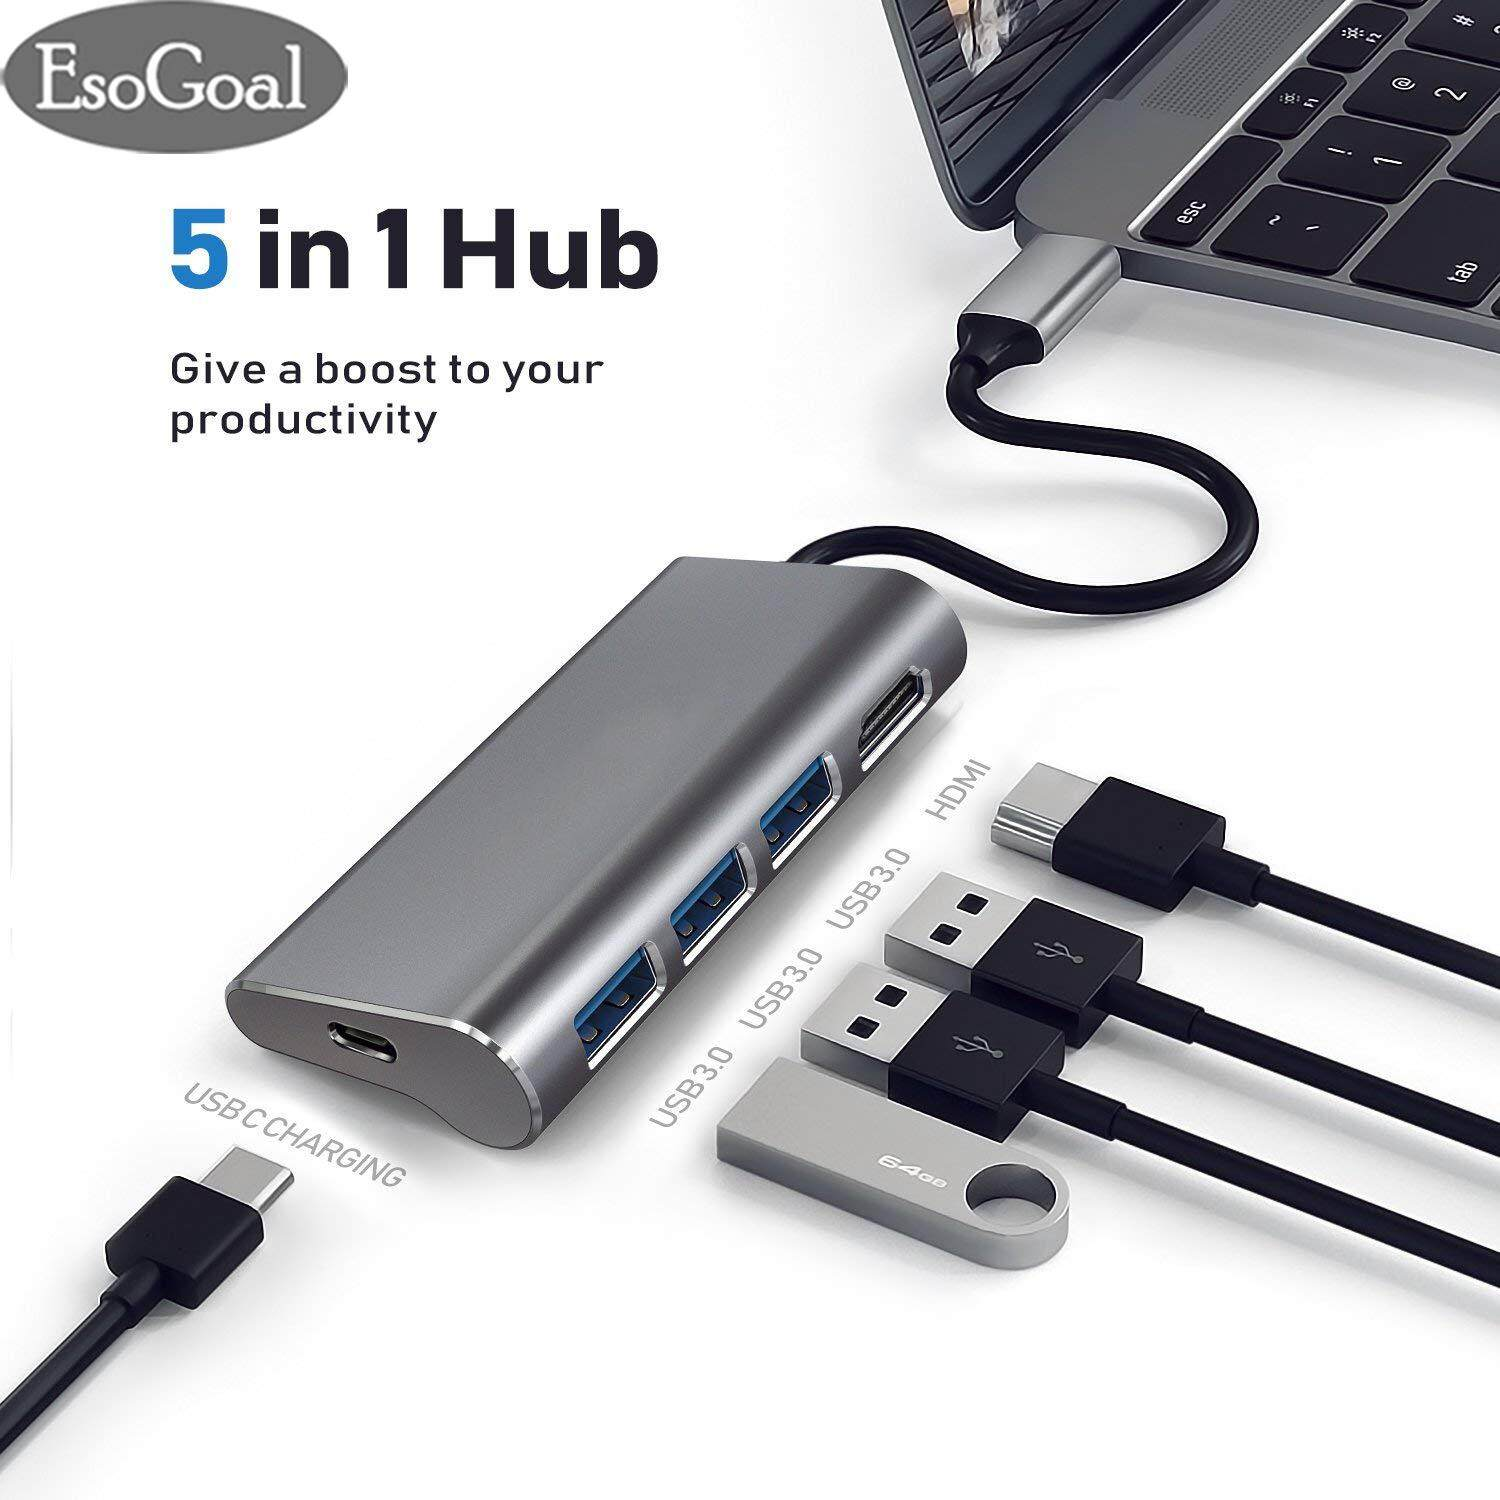 EsoGoal USB C Hub Type C Video Adapters USB Type C Hub for Macbook Pro USB Type C To HDMI Adapter Dock with 4K HDMI Port, 3 USB 3.0 Ports USB C